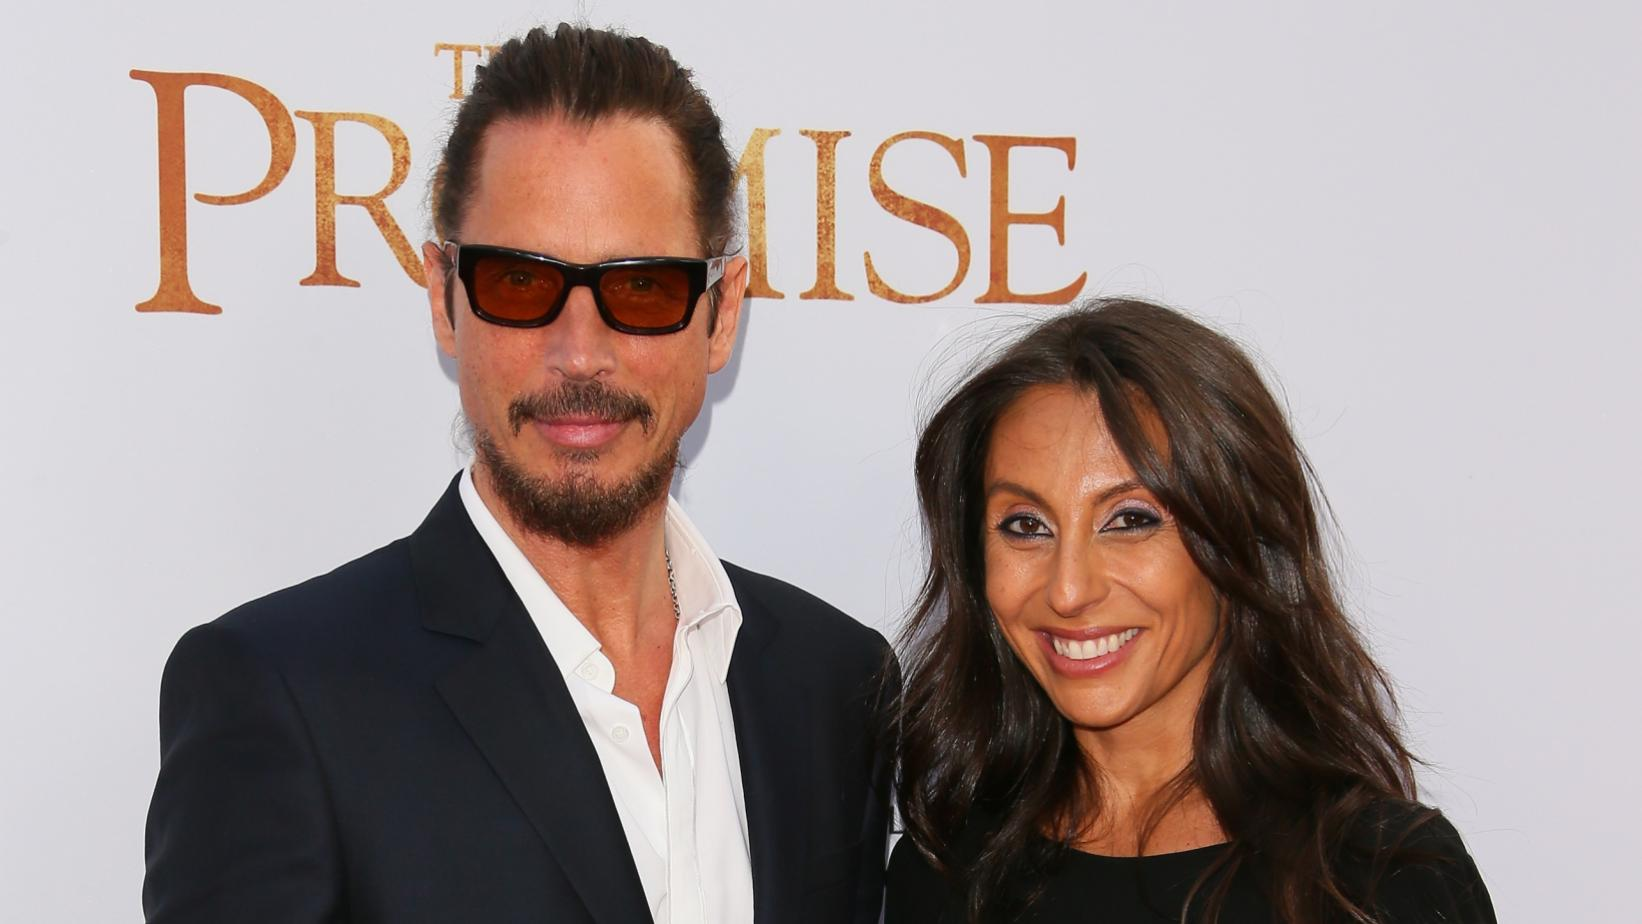 Chris Cornell and Vicky Cornell photographed in 2017